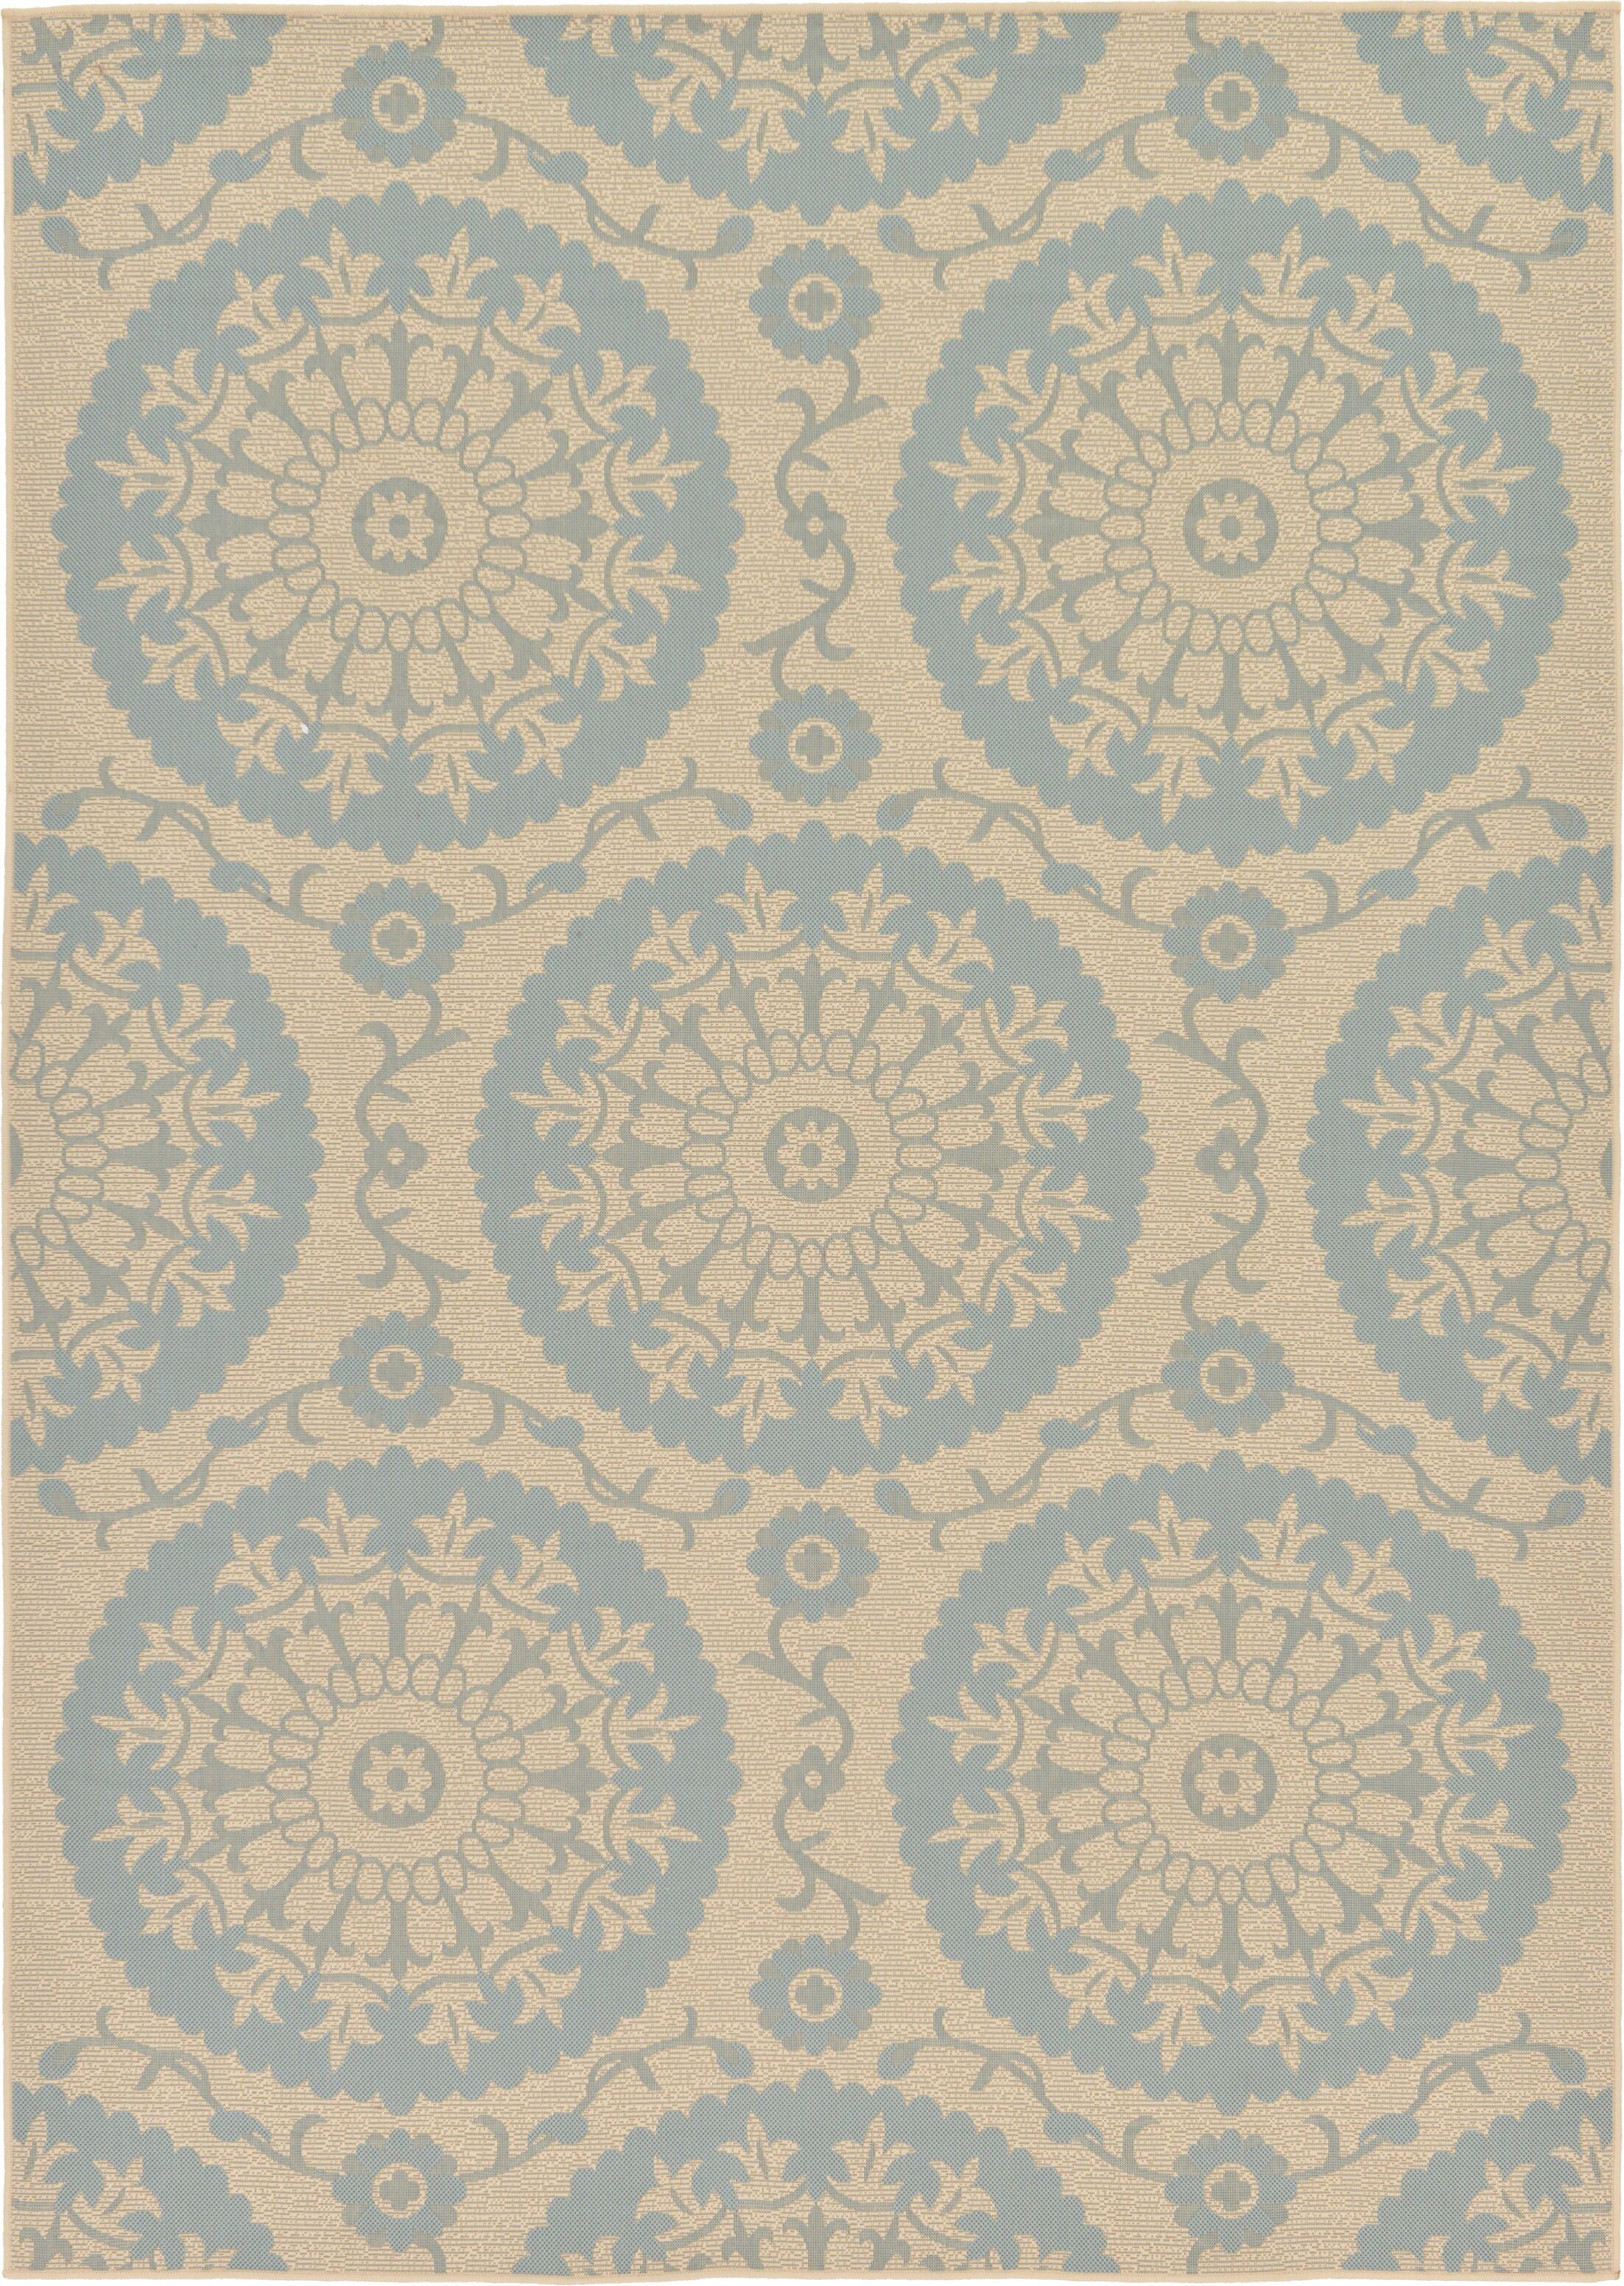 Keough Beige Outdoor Area Rug Rug Size: Rectangle 7' x 10'